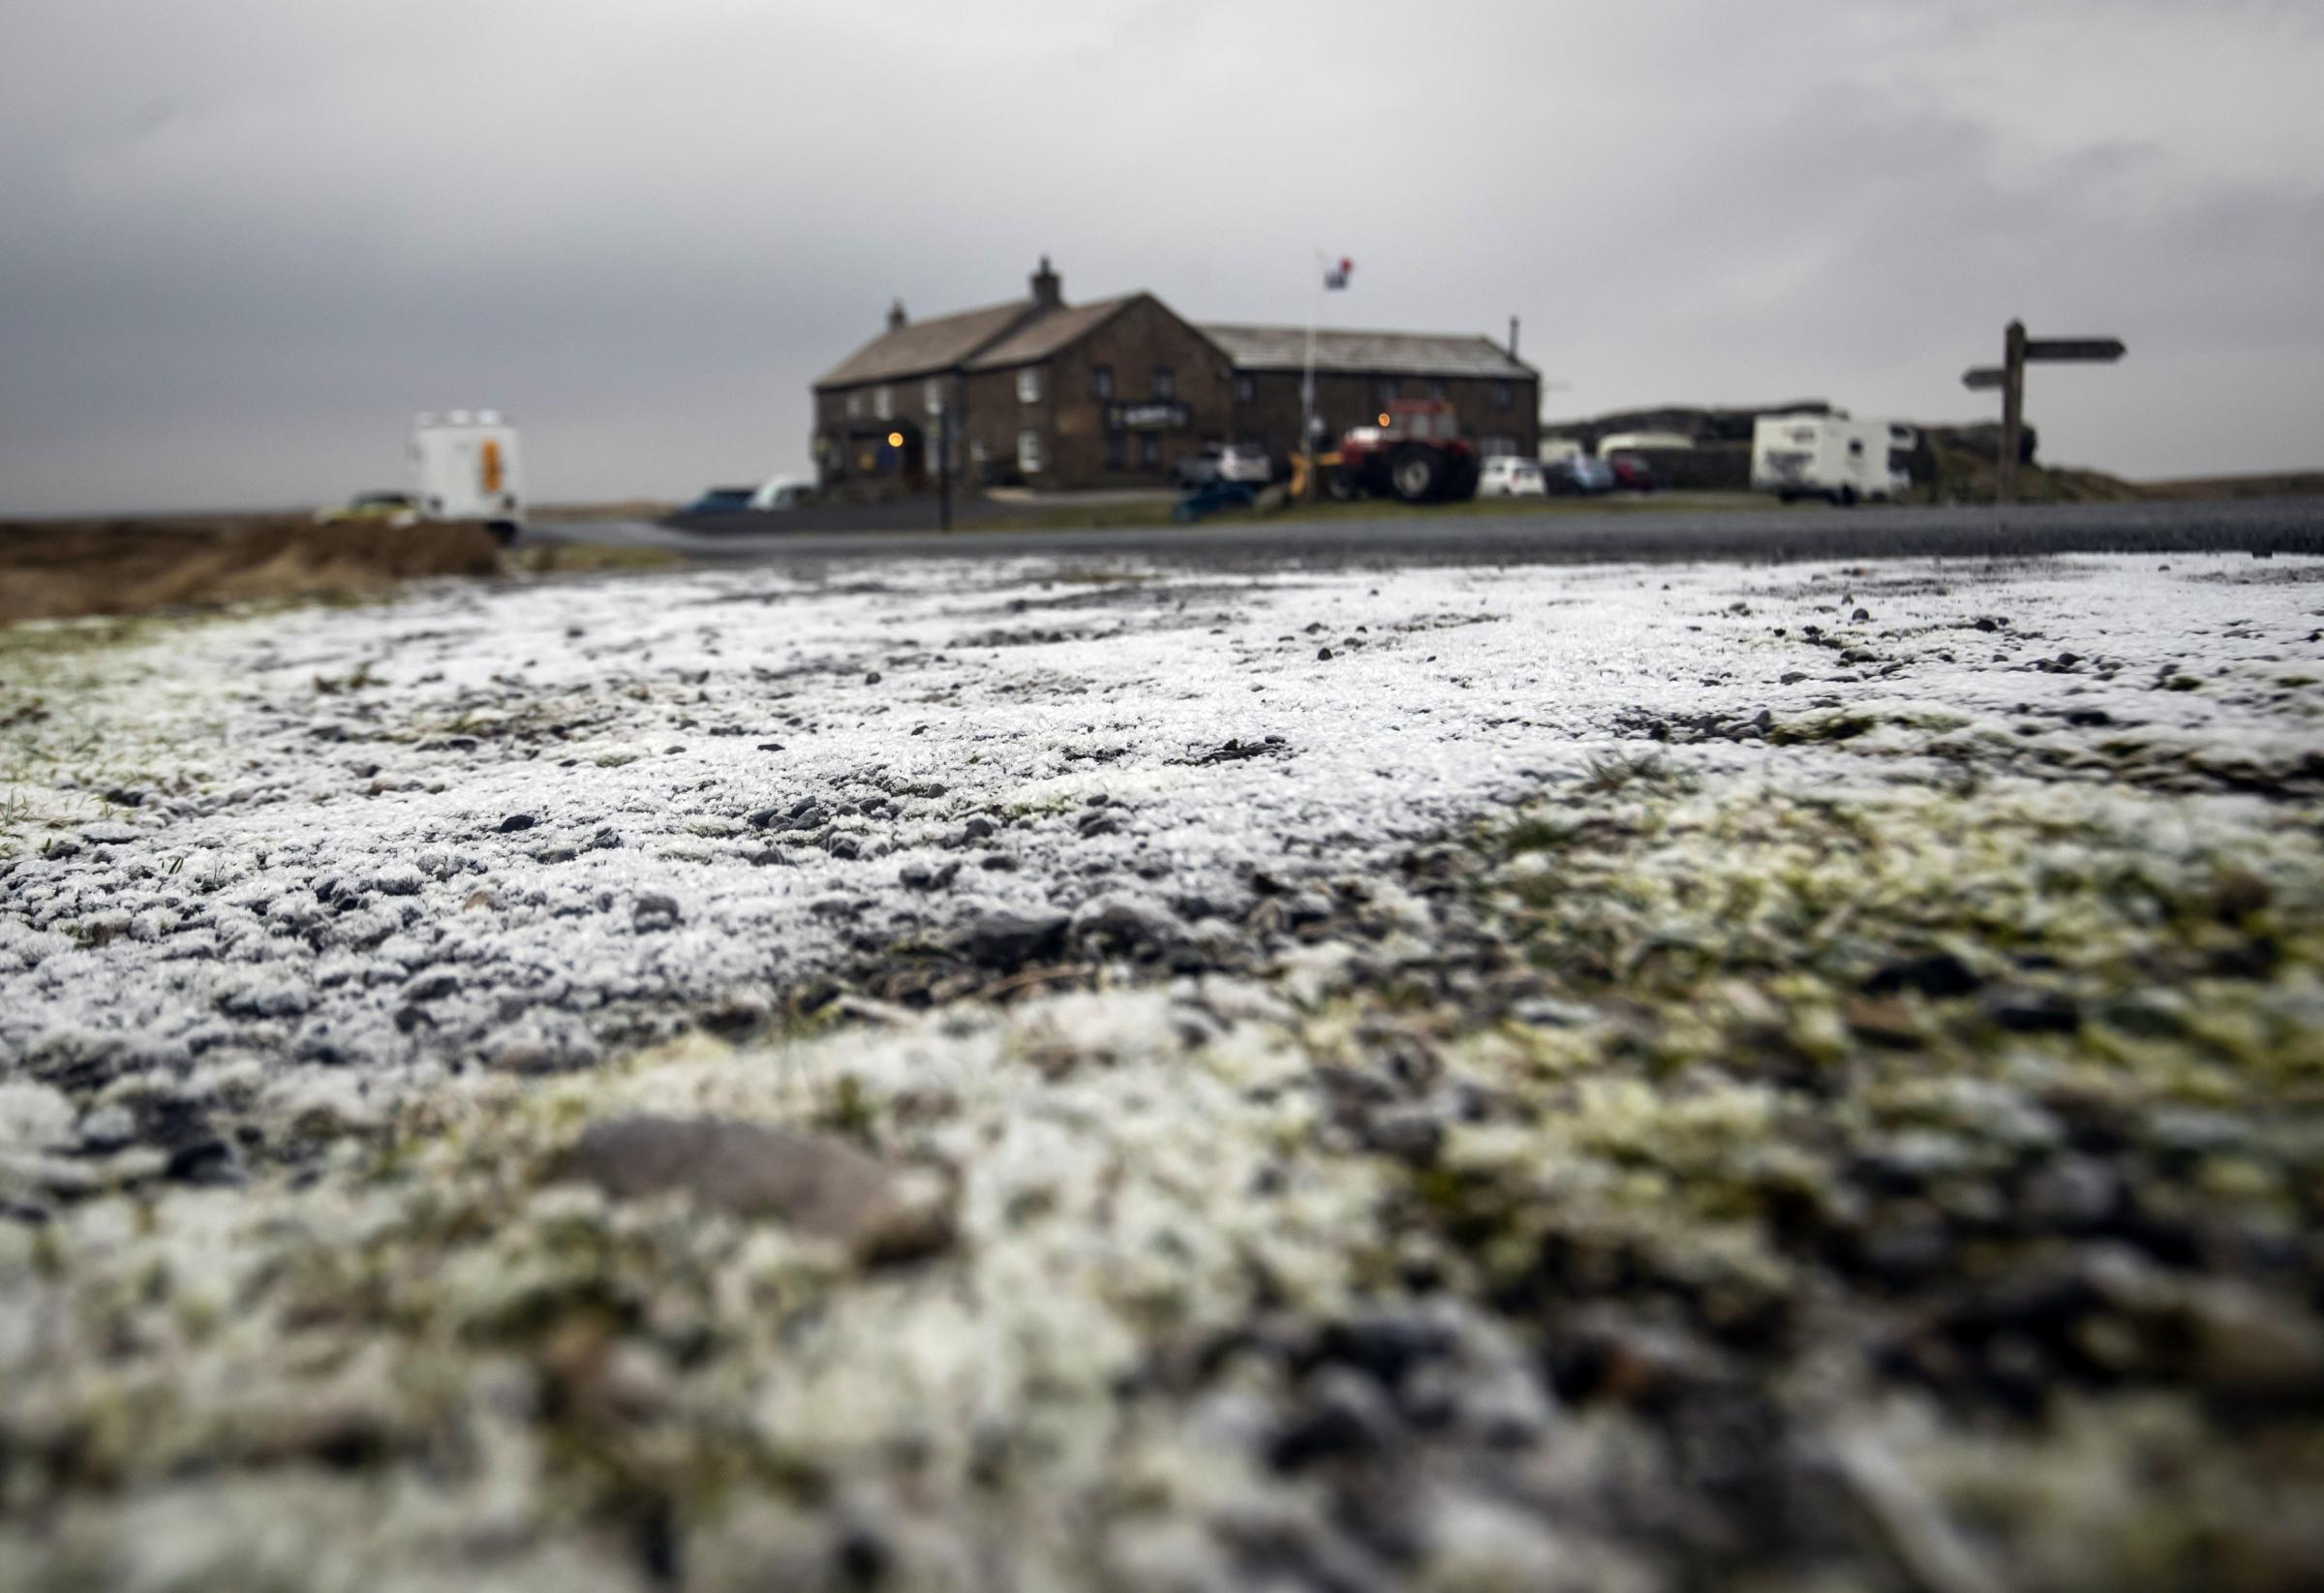 Ground frost near the Tan Hill Inn in the Yorkshire Dales as amber warnings alerting people to heavy snow and ice have been issued for the north of England and Midlands. Picture: PA